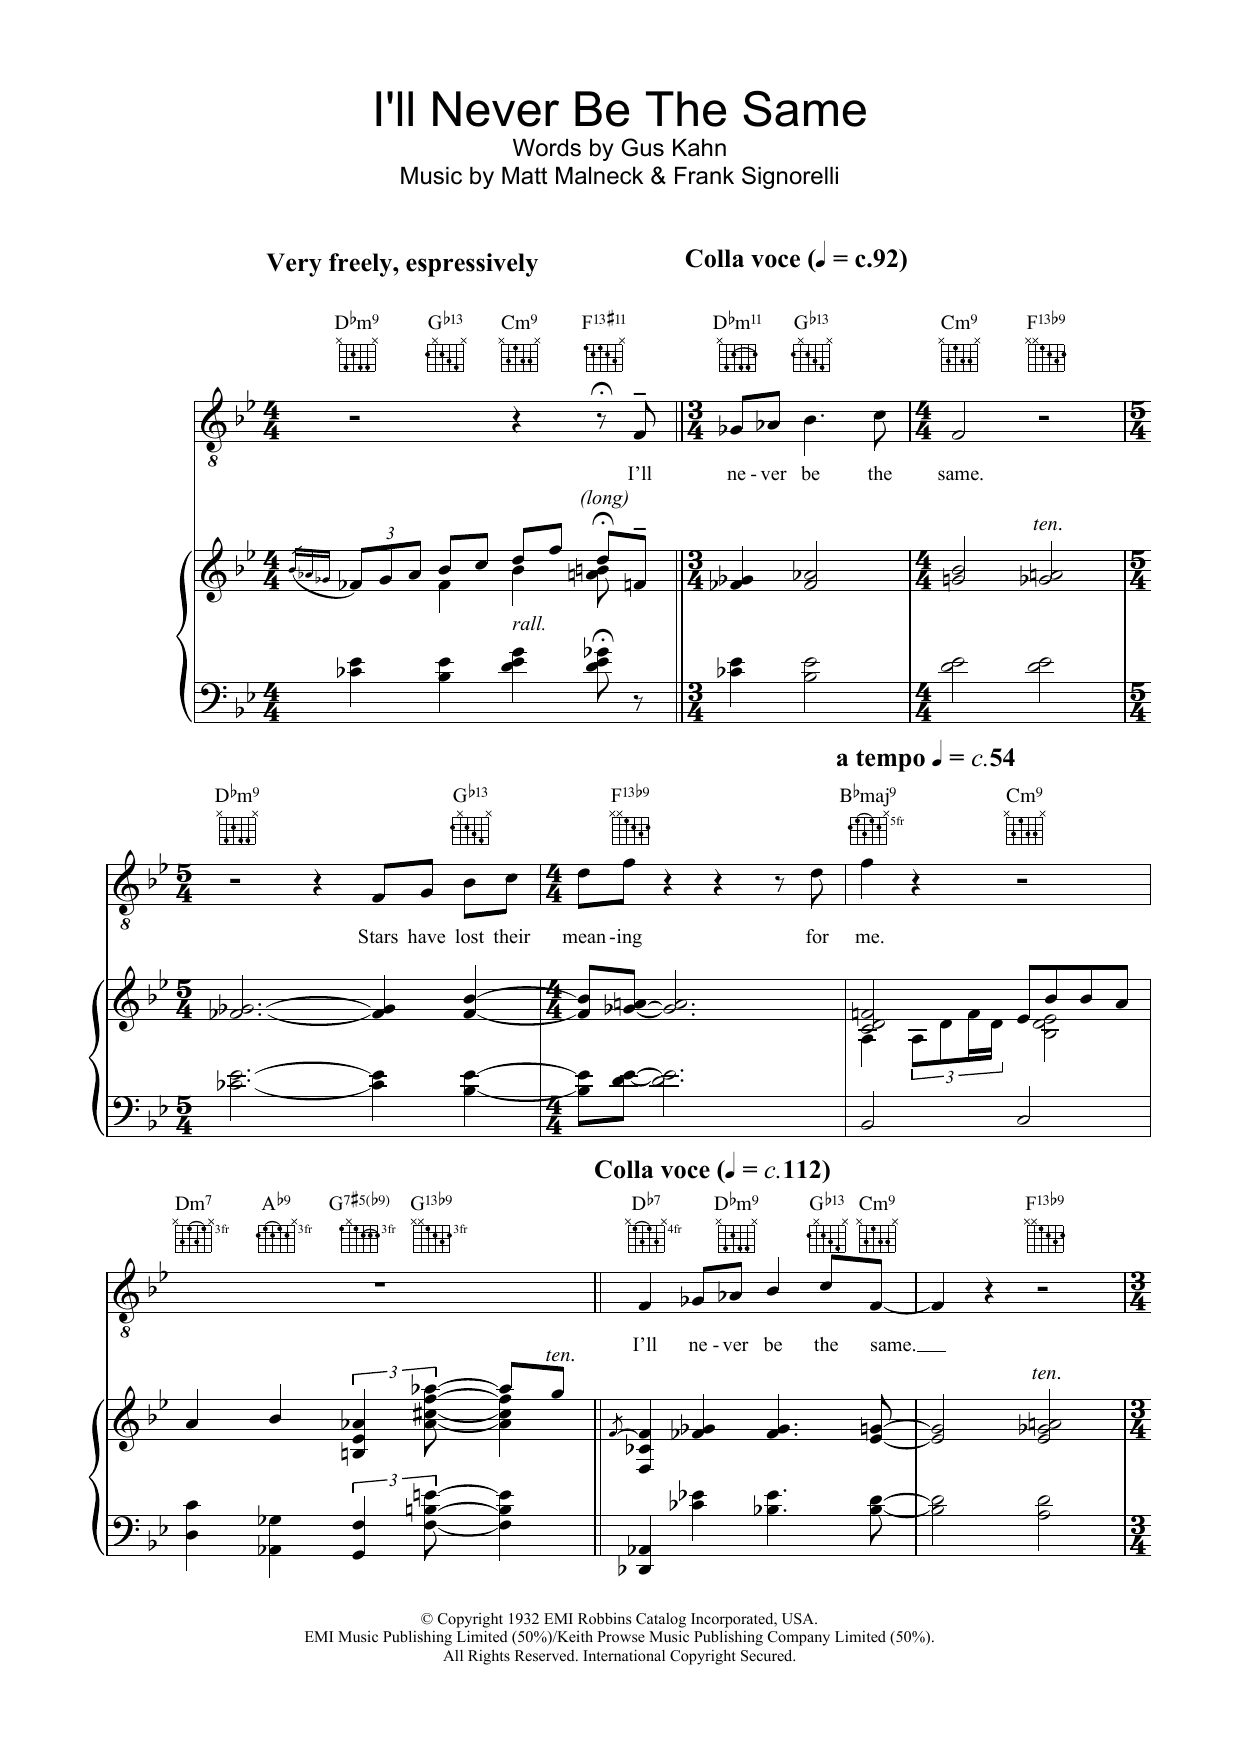 Diana Krall I'll Never Be The Same sheet music preview music notes and score for Piano, Vocal & Guitar including 8 page(s)